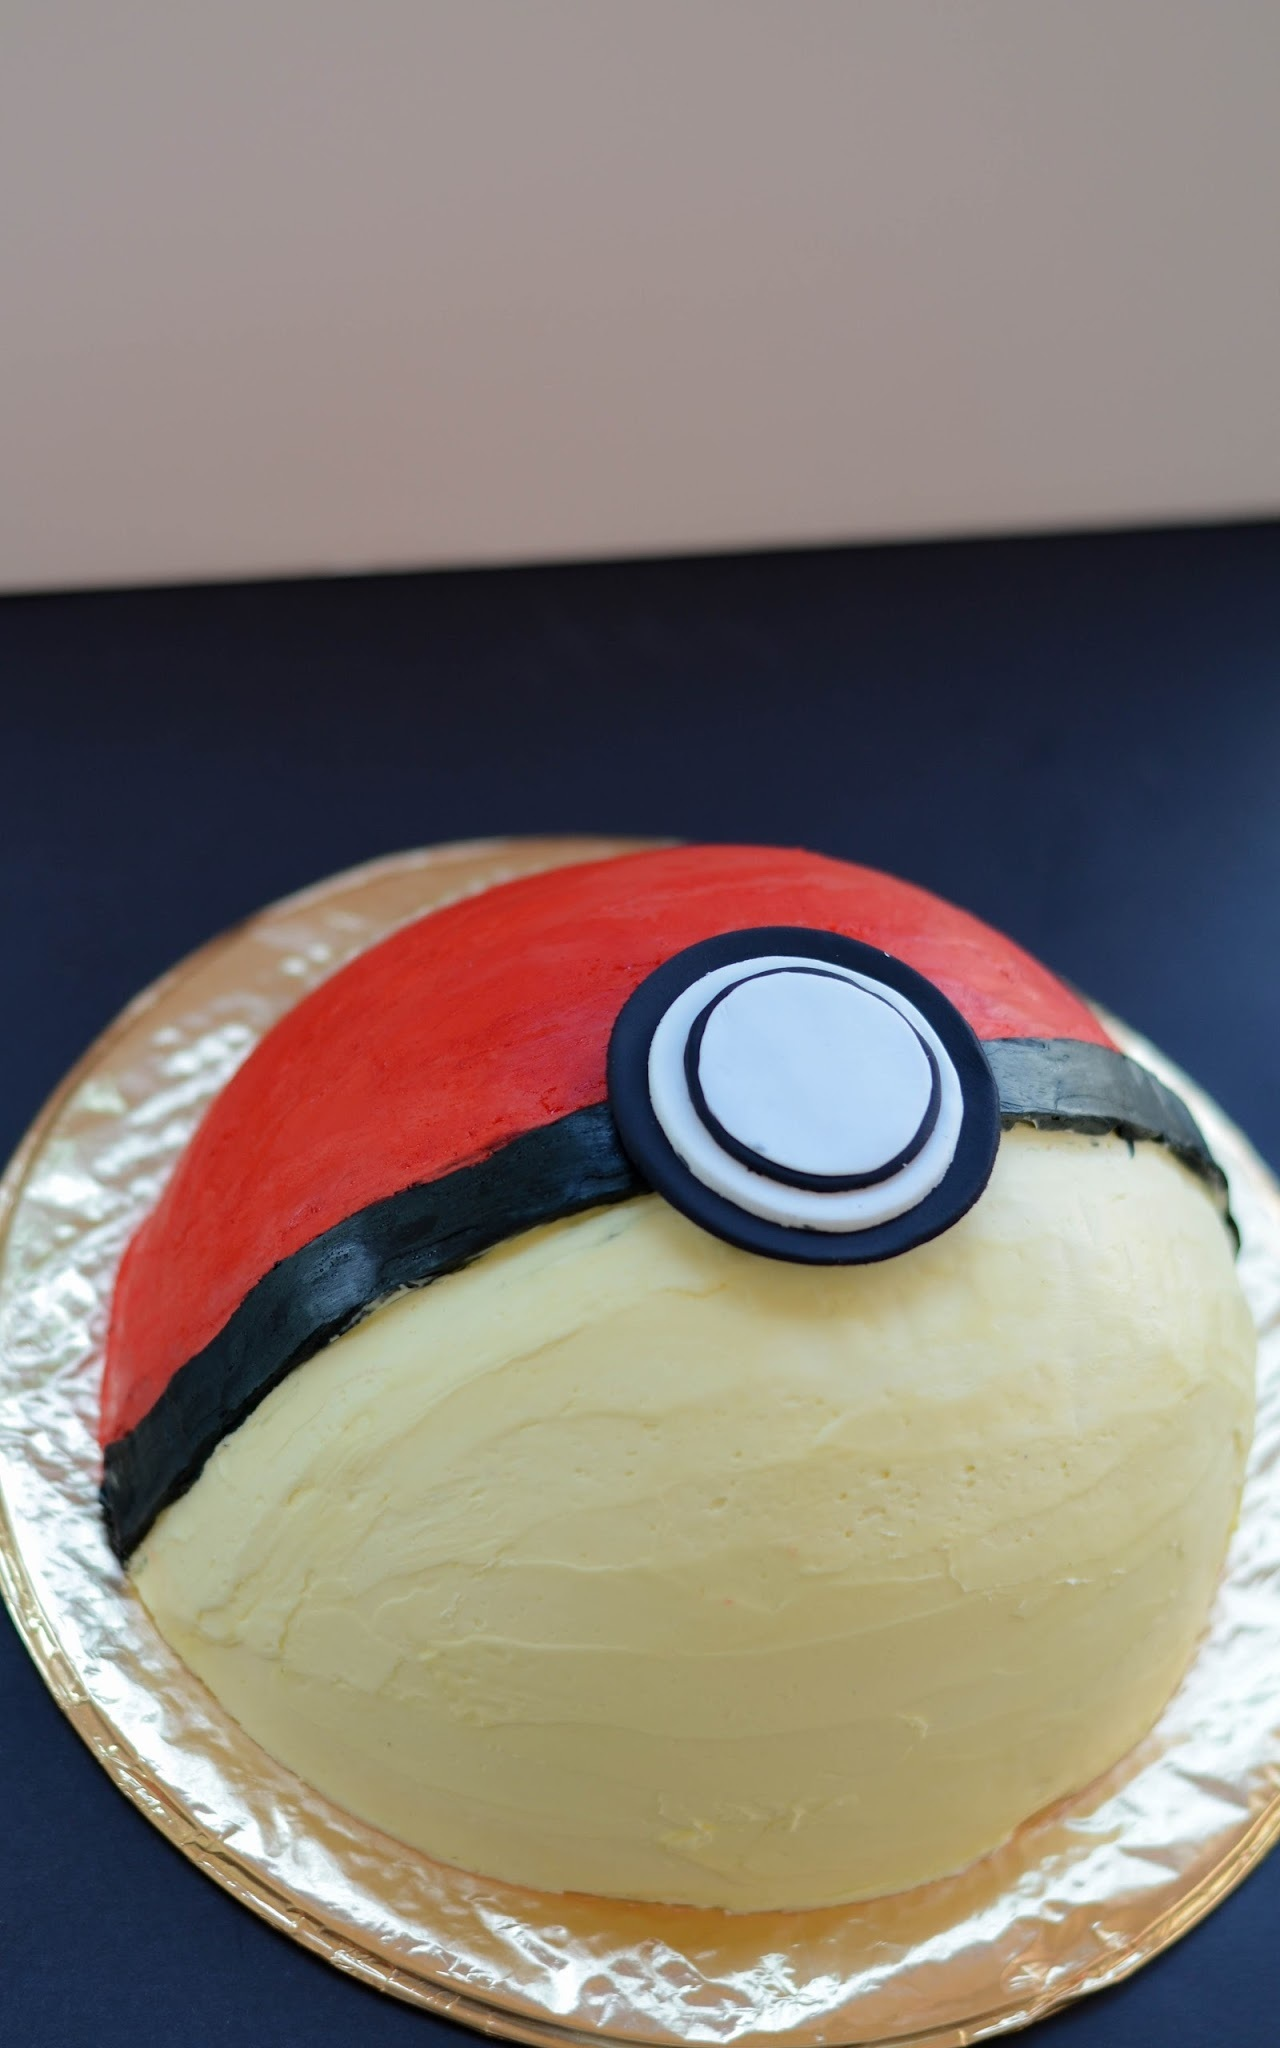 Pokeball cheese cake cake, so retro.